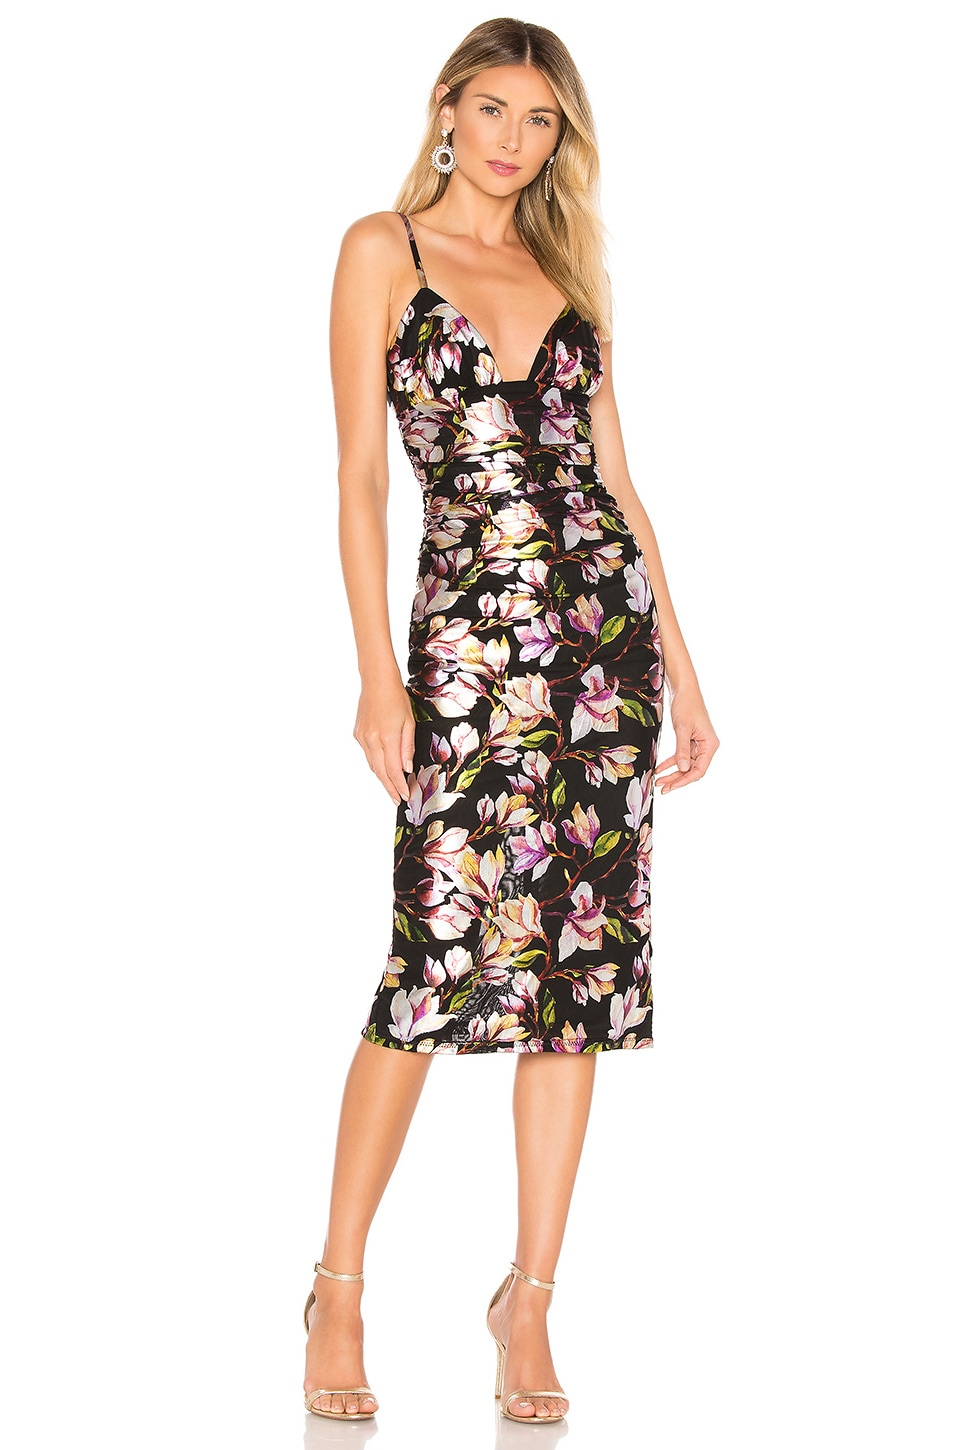 NBD Deirdre Midi Dress in Black Floral